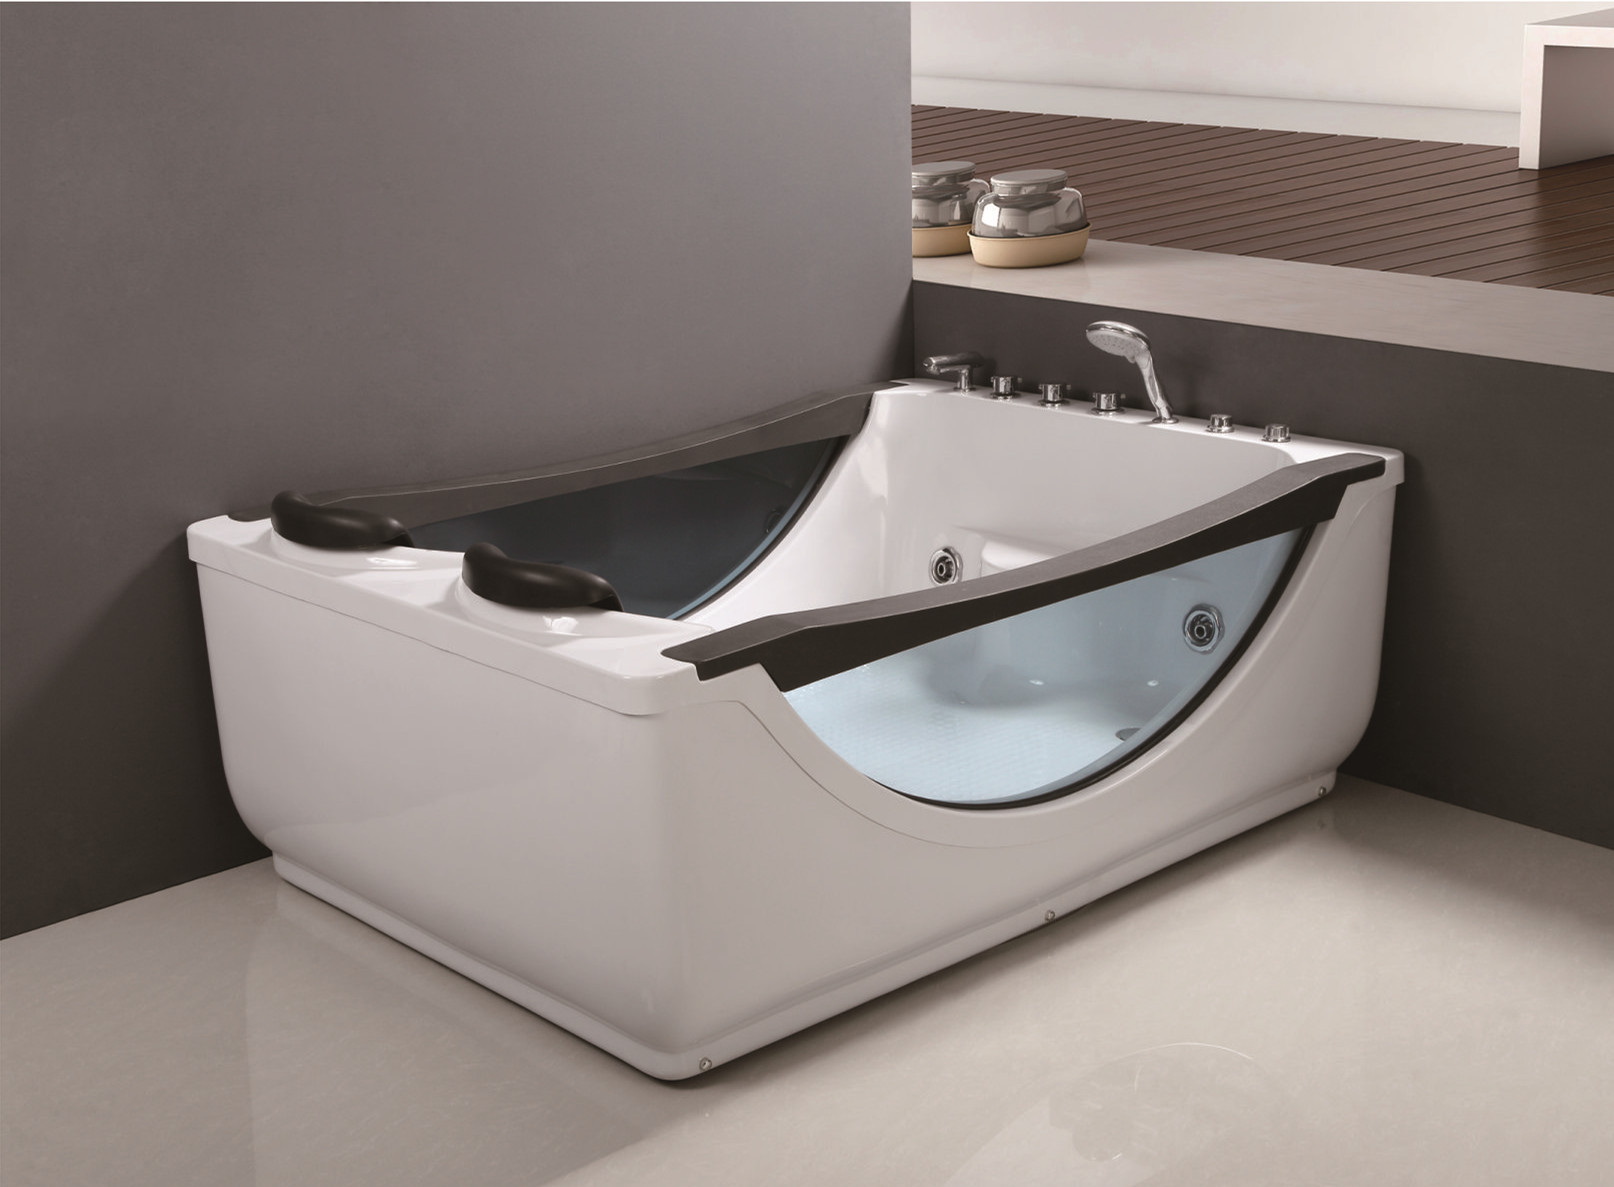 C-040-Luxury White Black ABS Glass Hot Tub Whirlpool Massage Jetted Bathroom Bathtub with Cheap Price for Sale.jpg